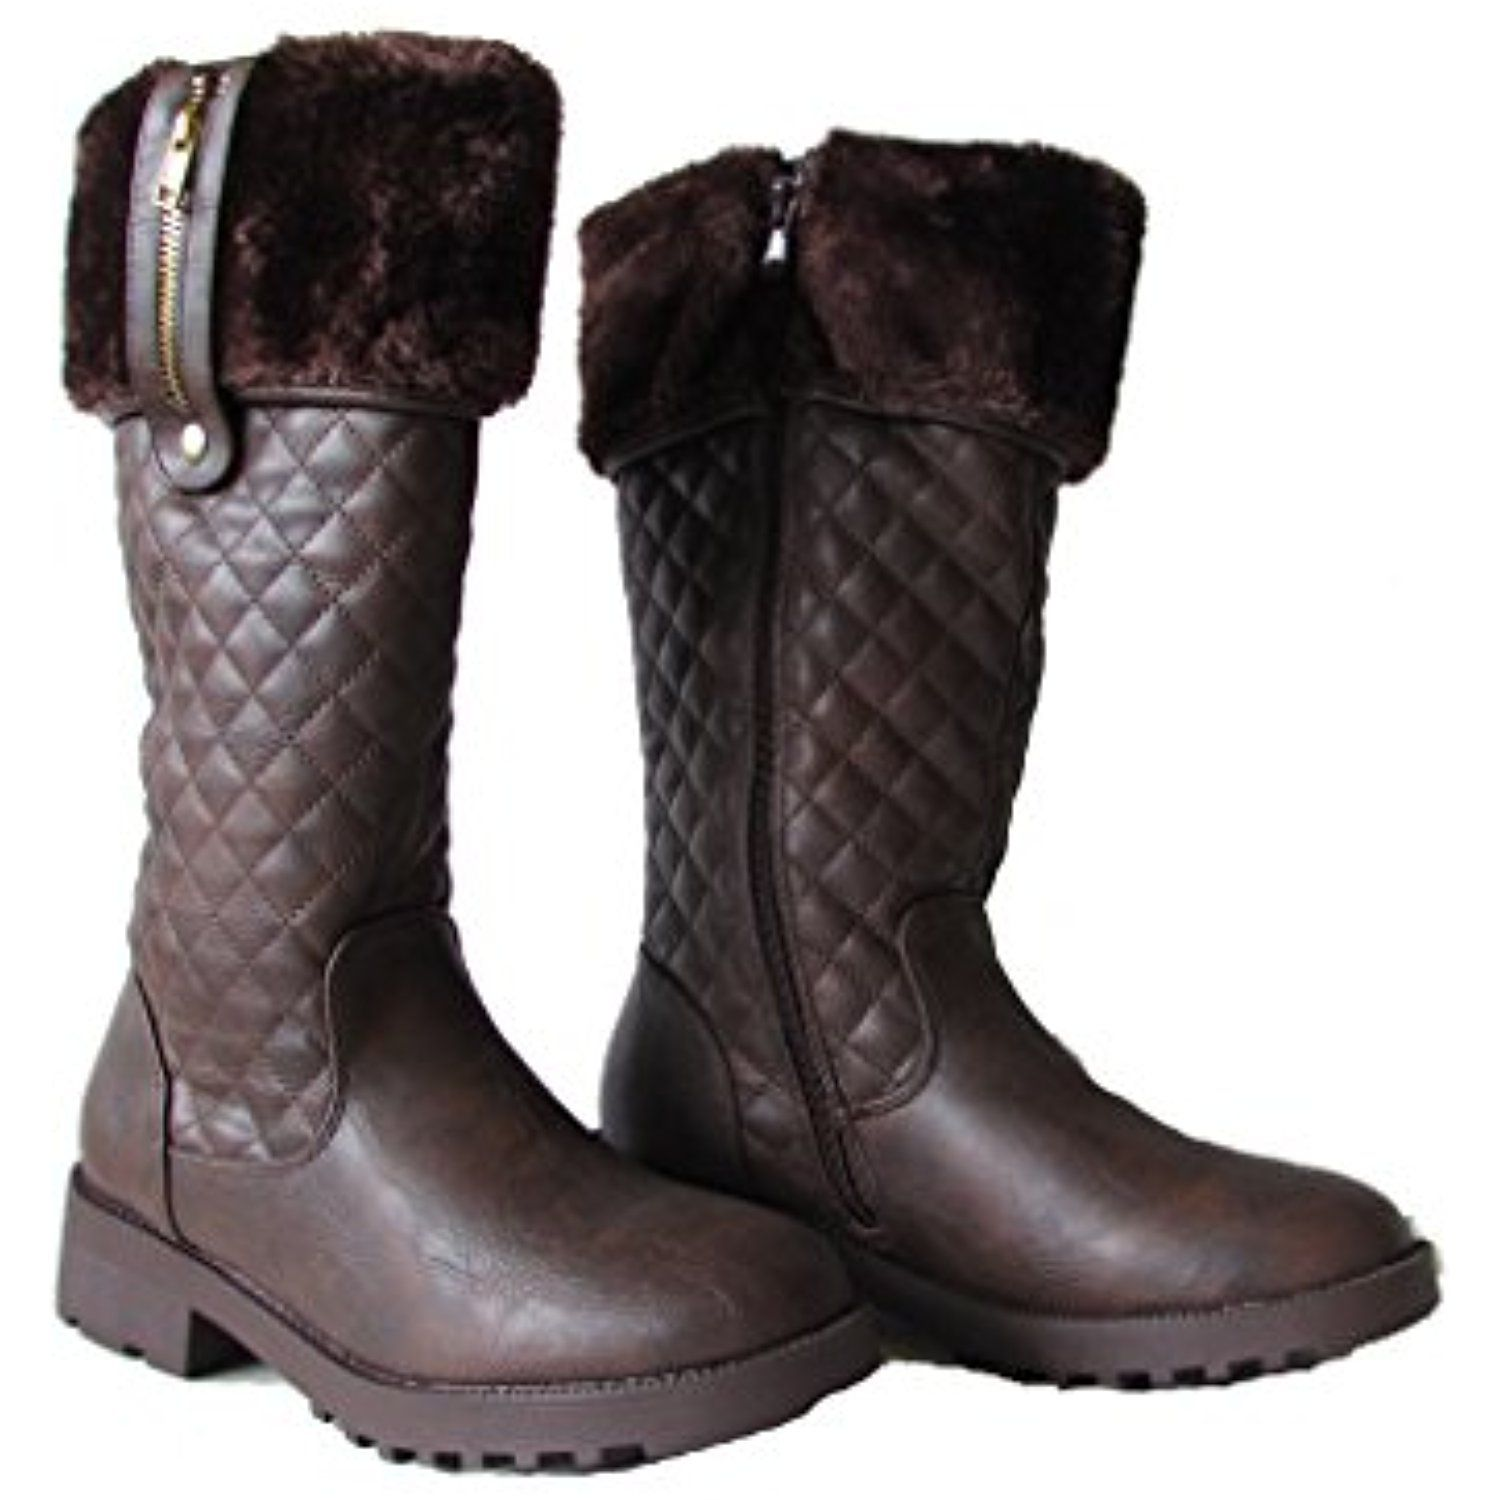 Daytona-34 Womens Deco Diamond Quilted Knee High Equestrian Style Snow Boots Brown